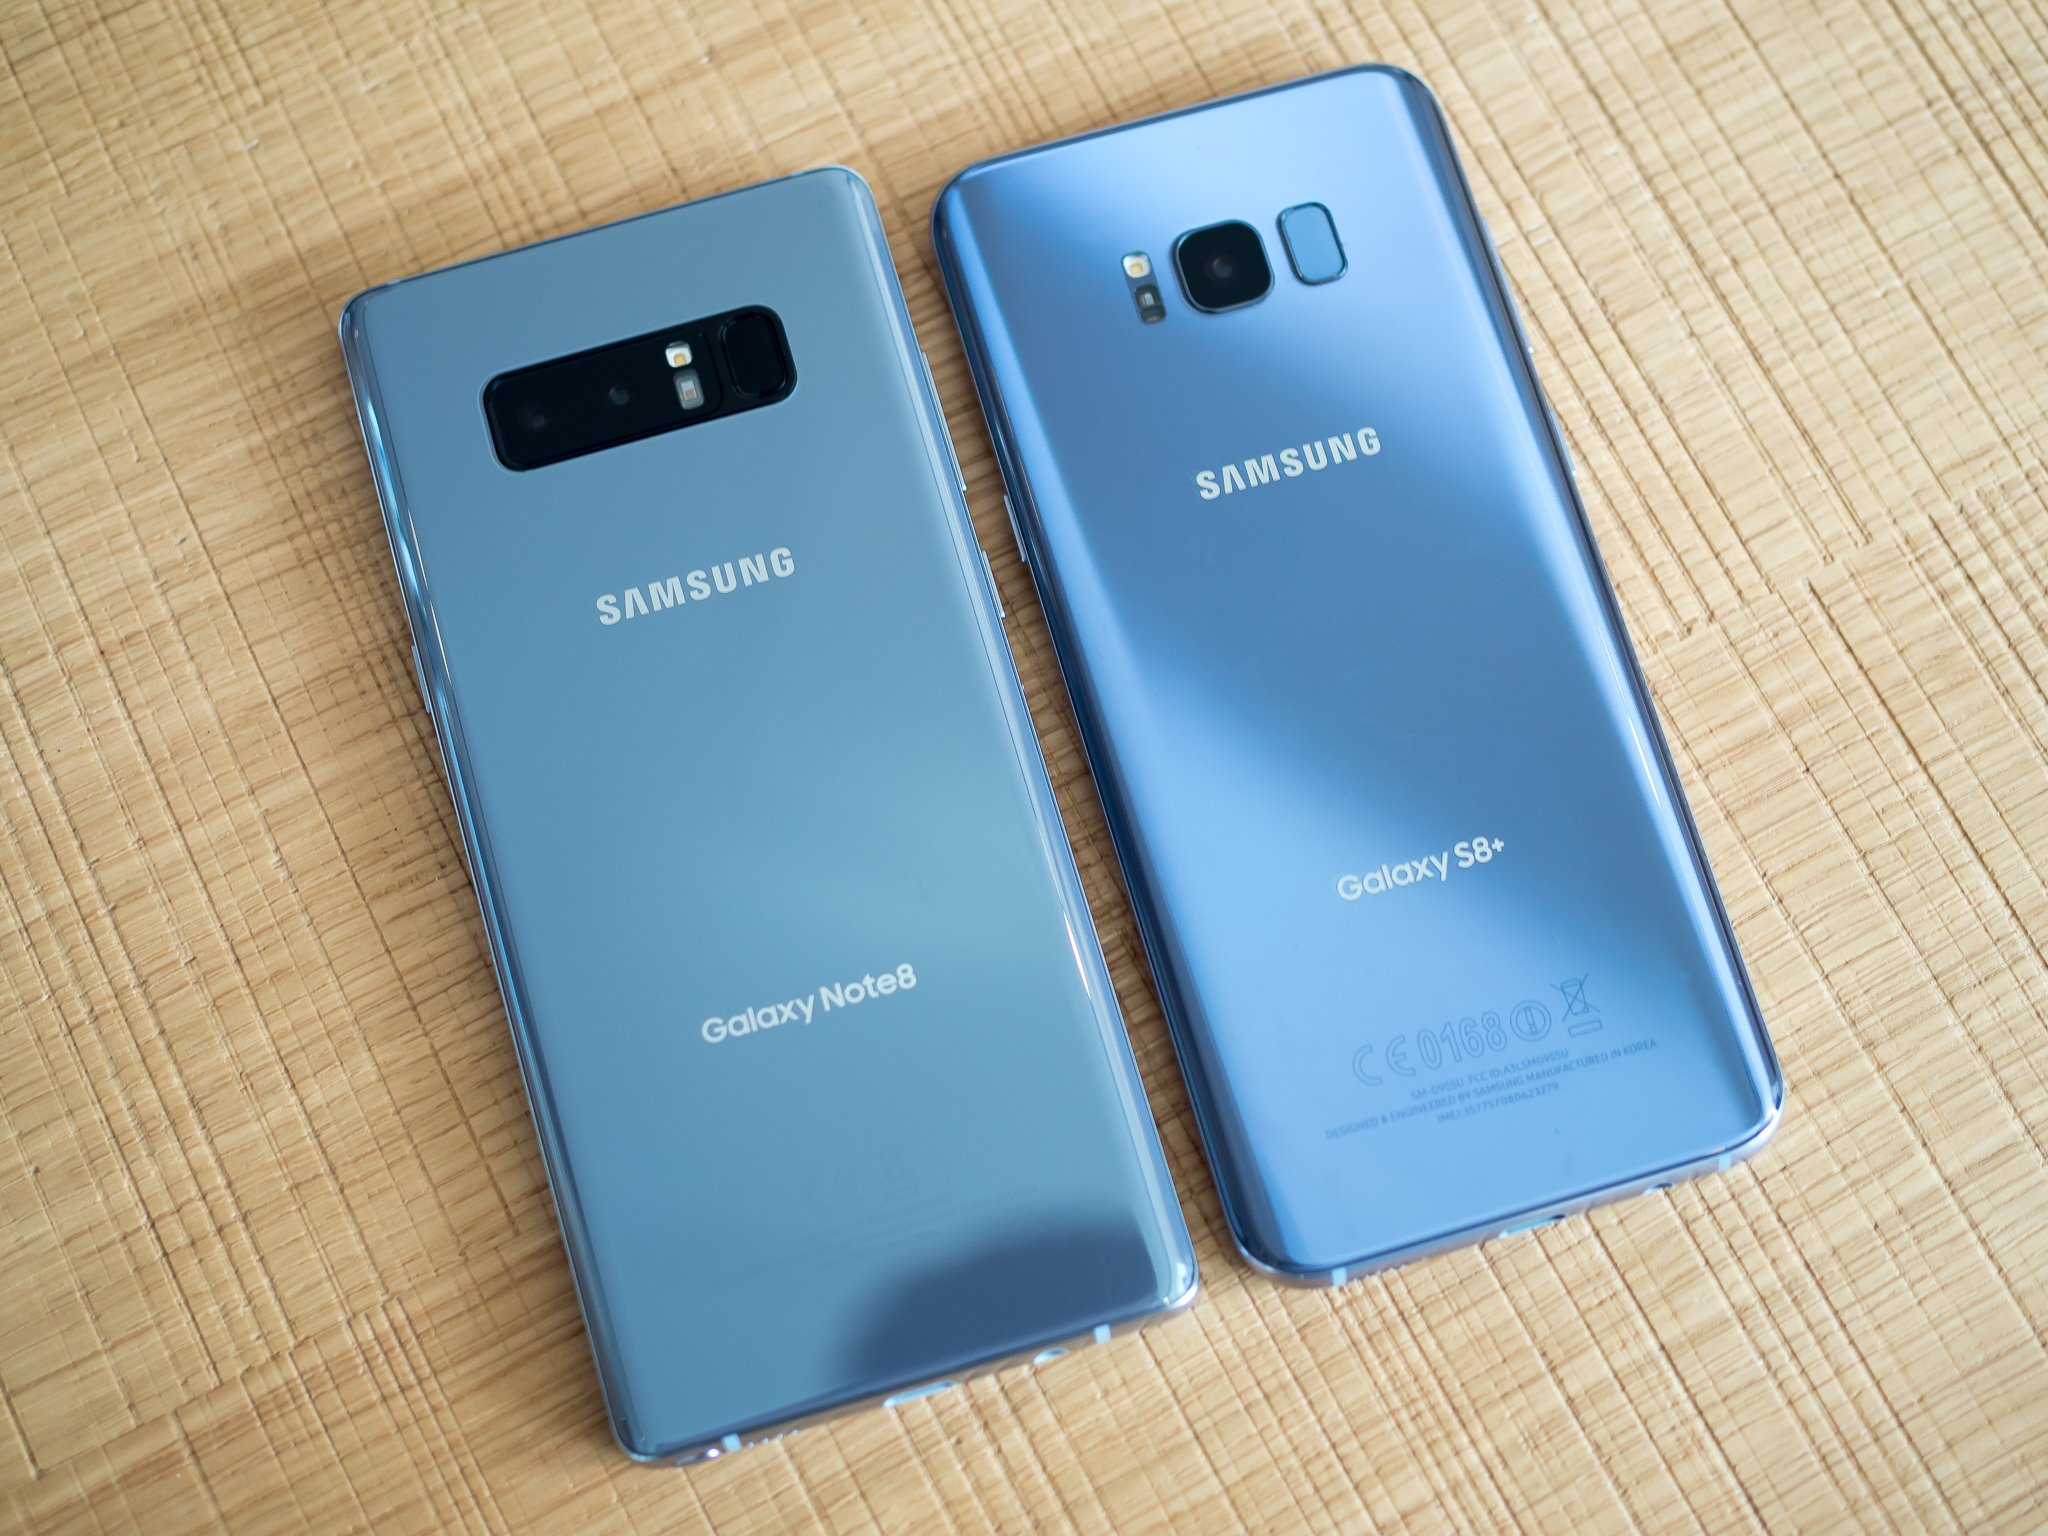 Galaxy Note 8 vs Galaxy S8 Which should you buy